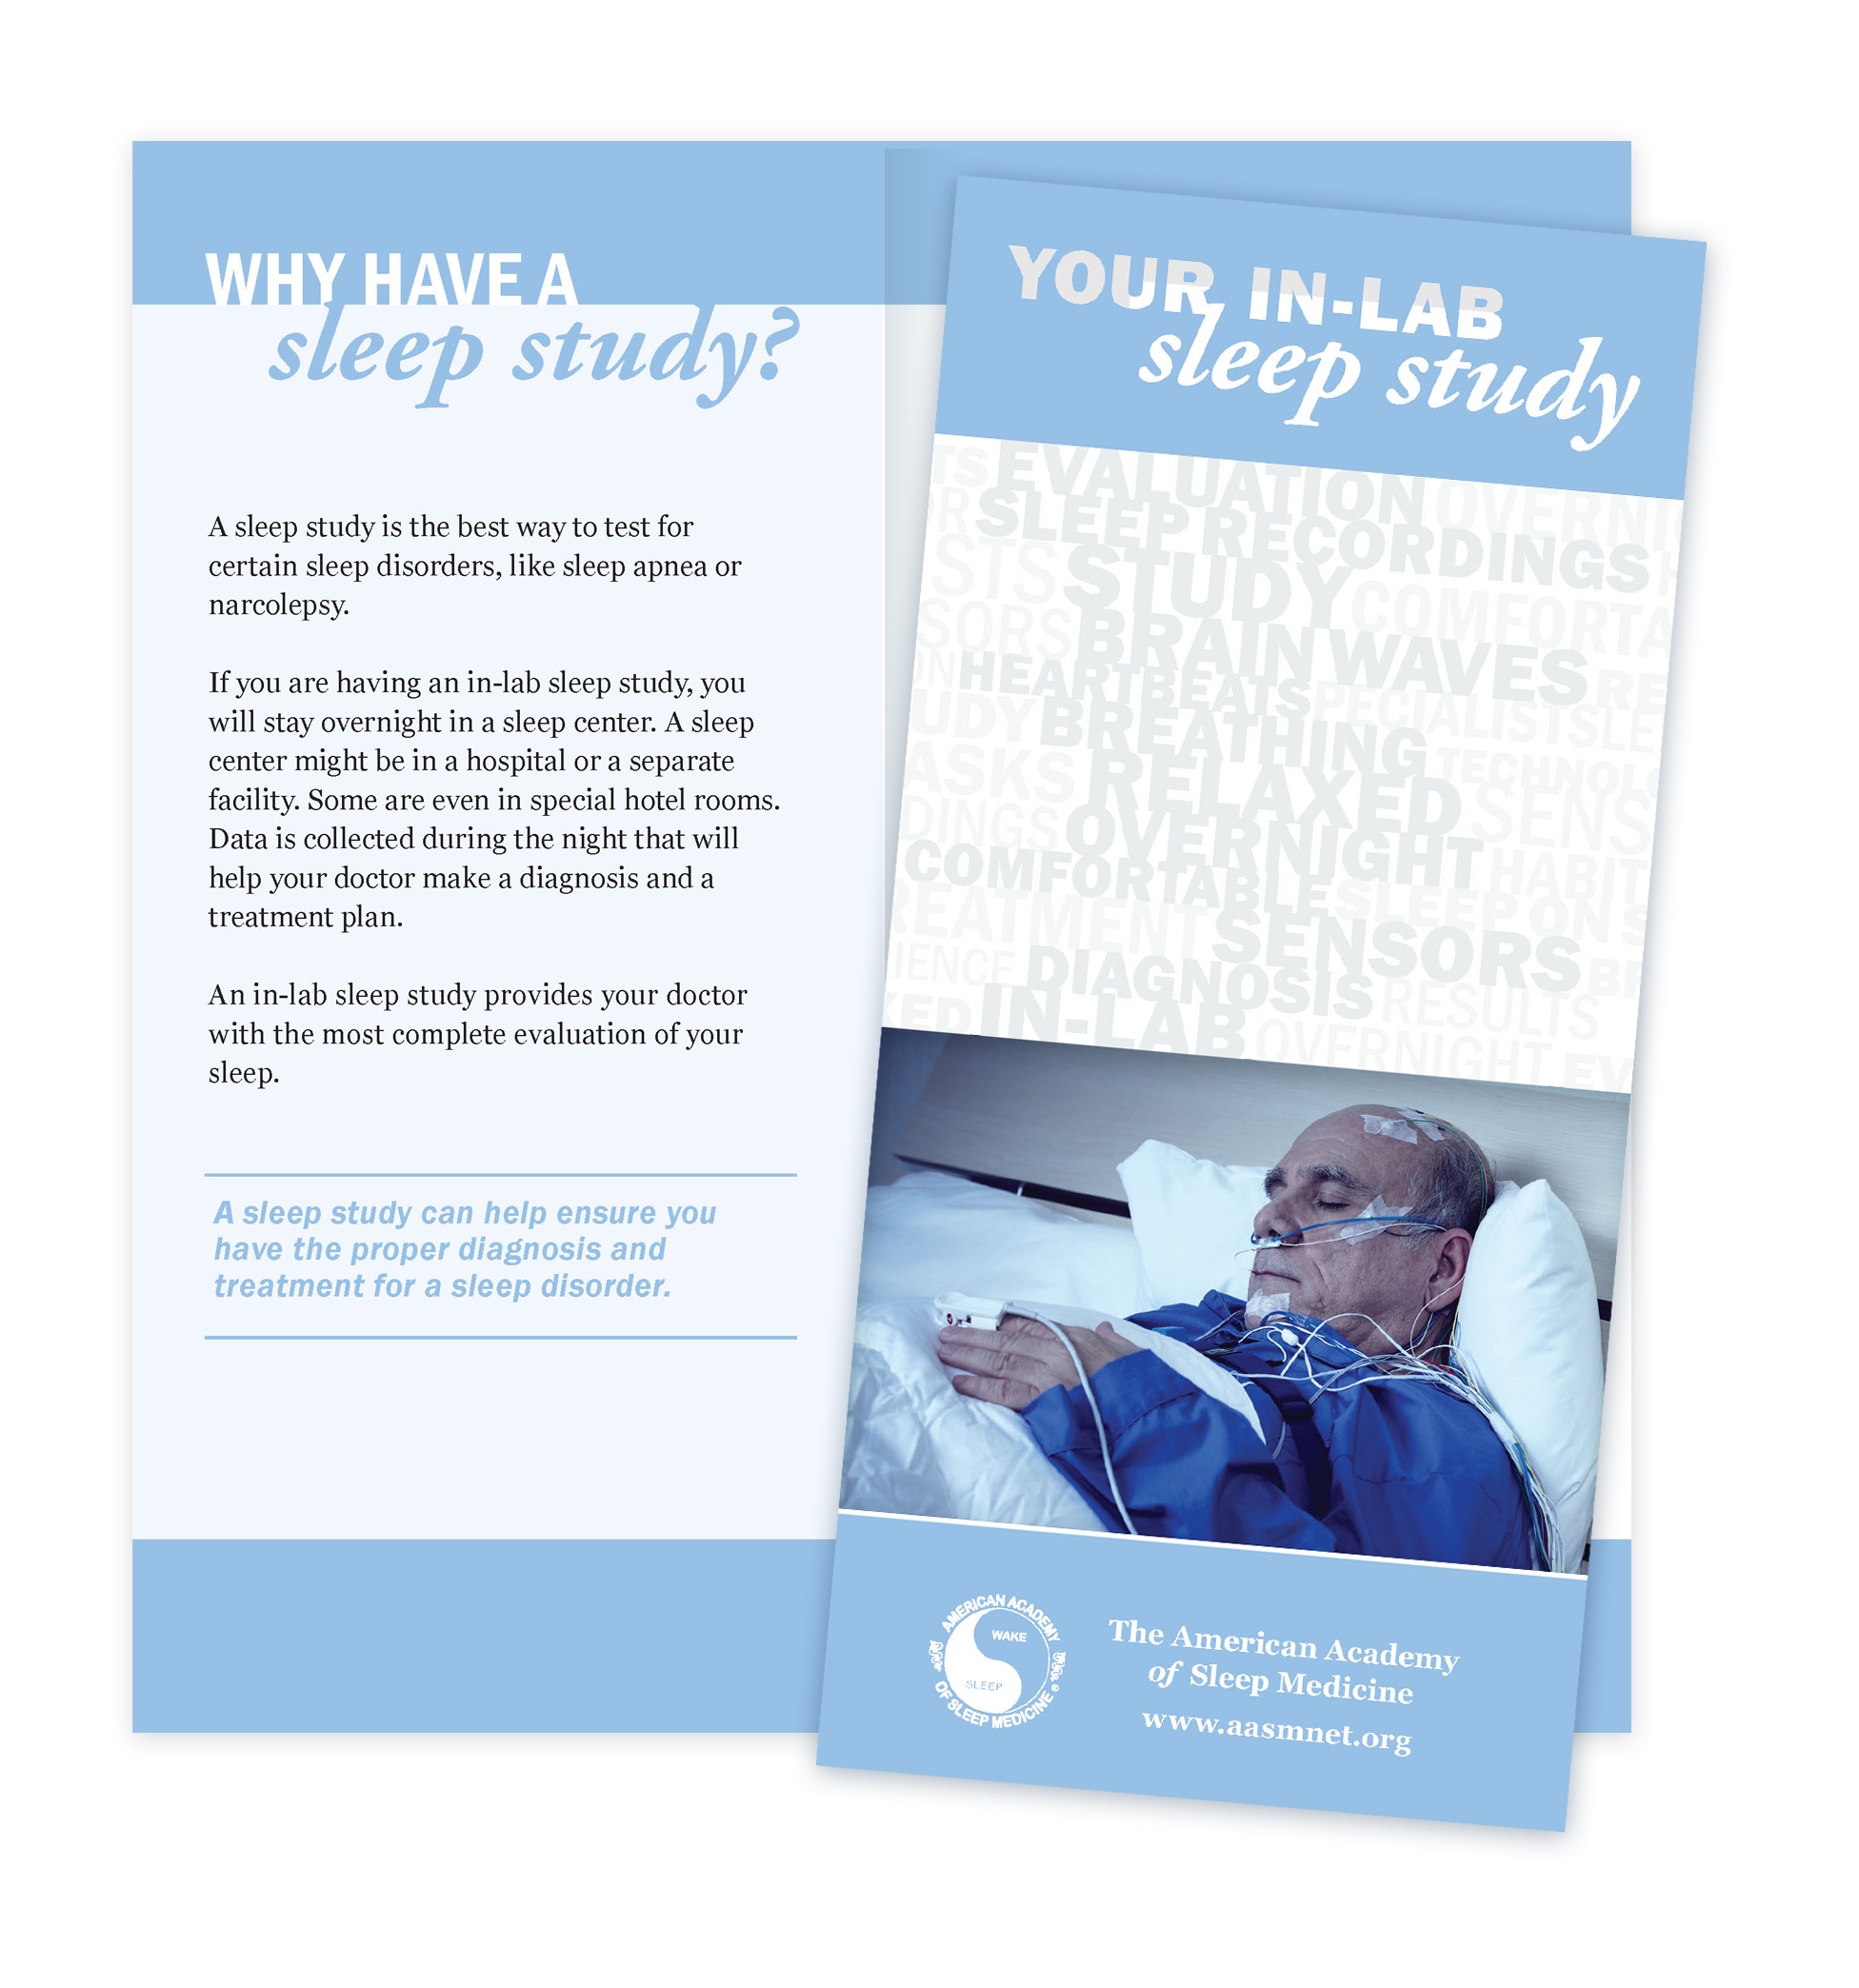 Your In-Lab Sleep Study Patient Education Brochures (50 brochures)